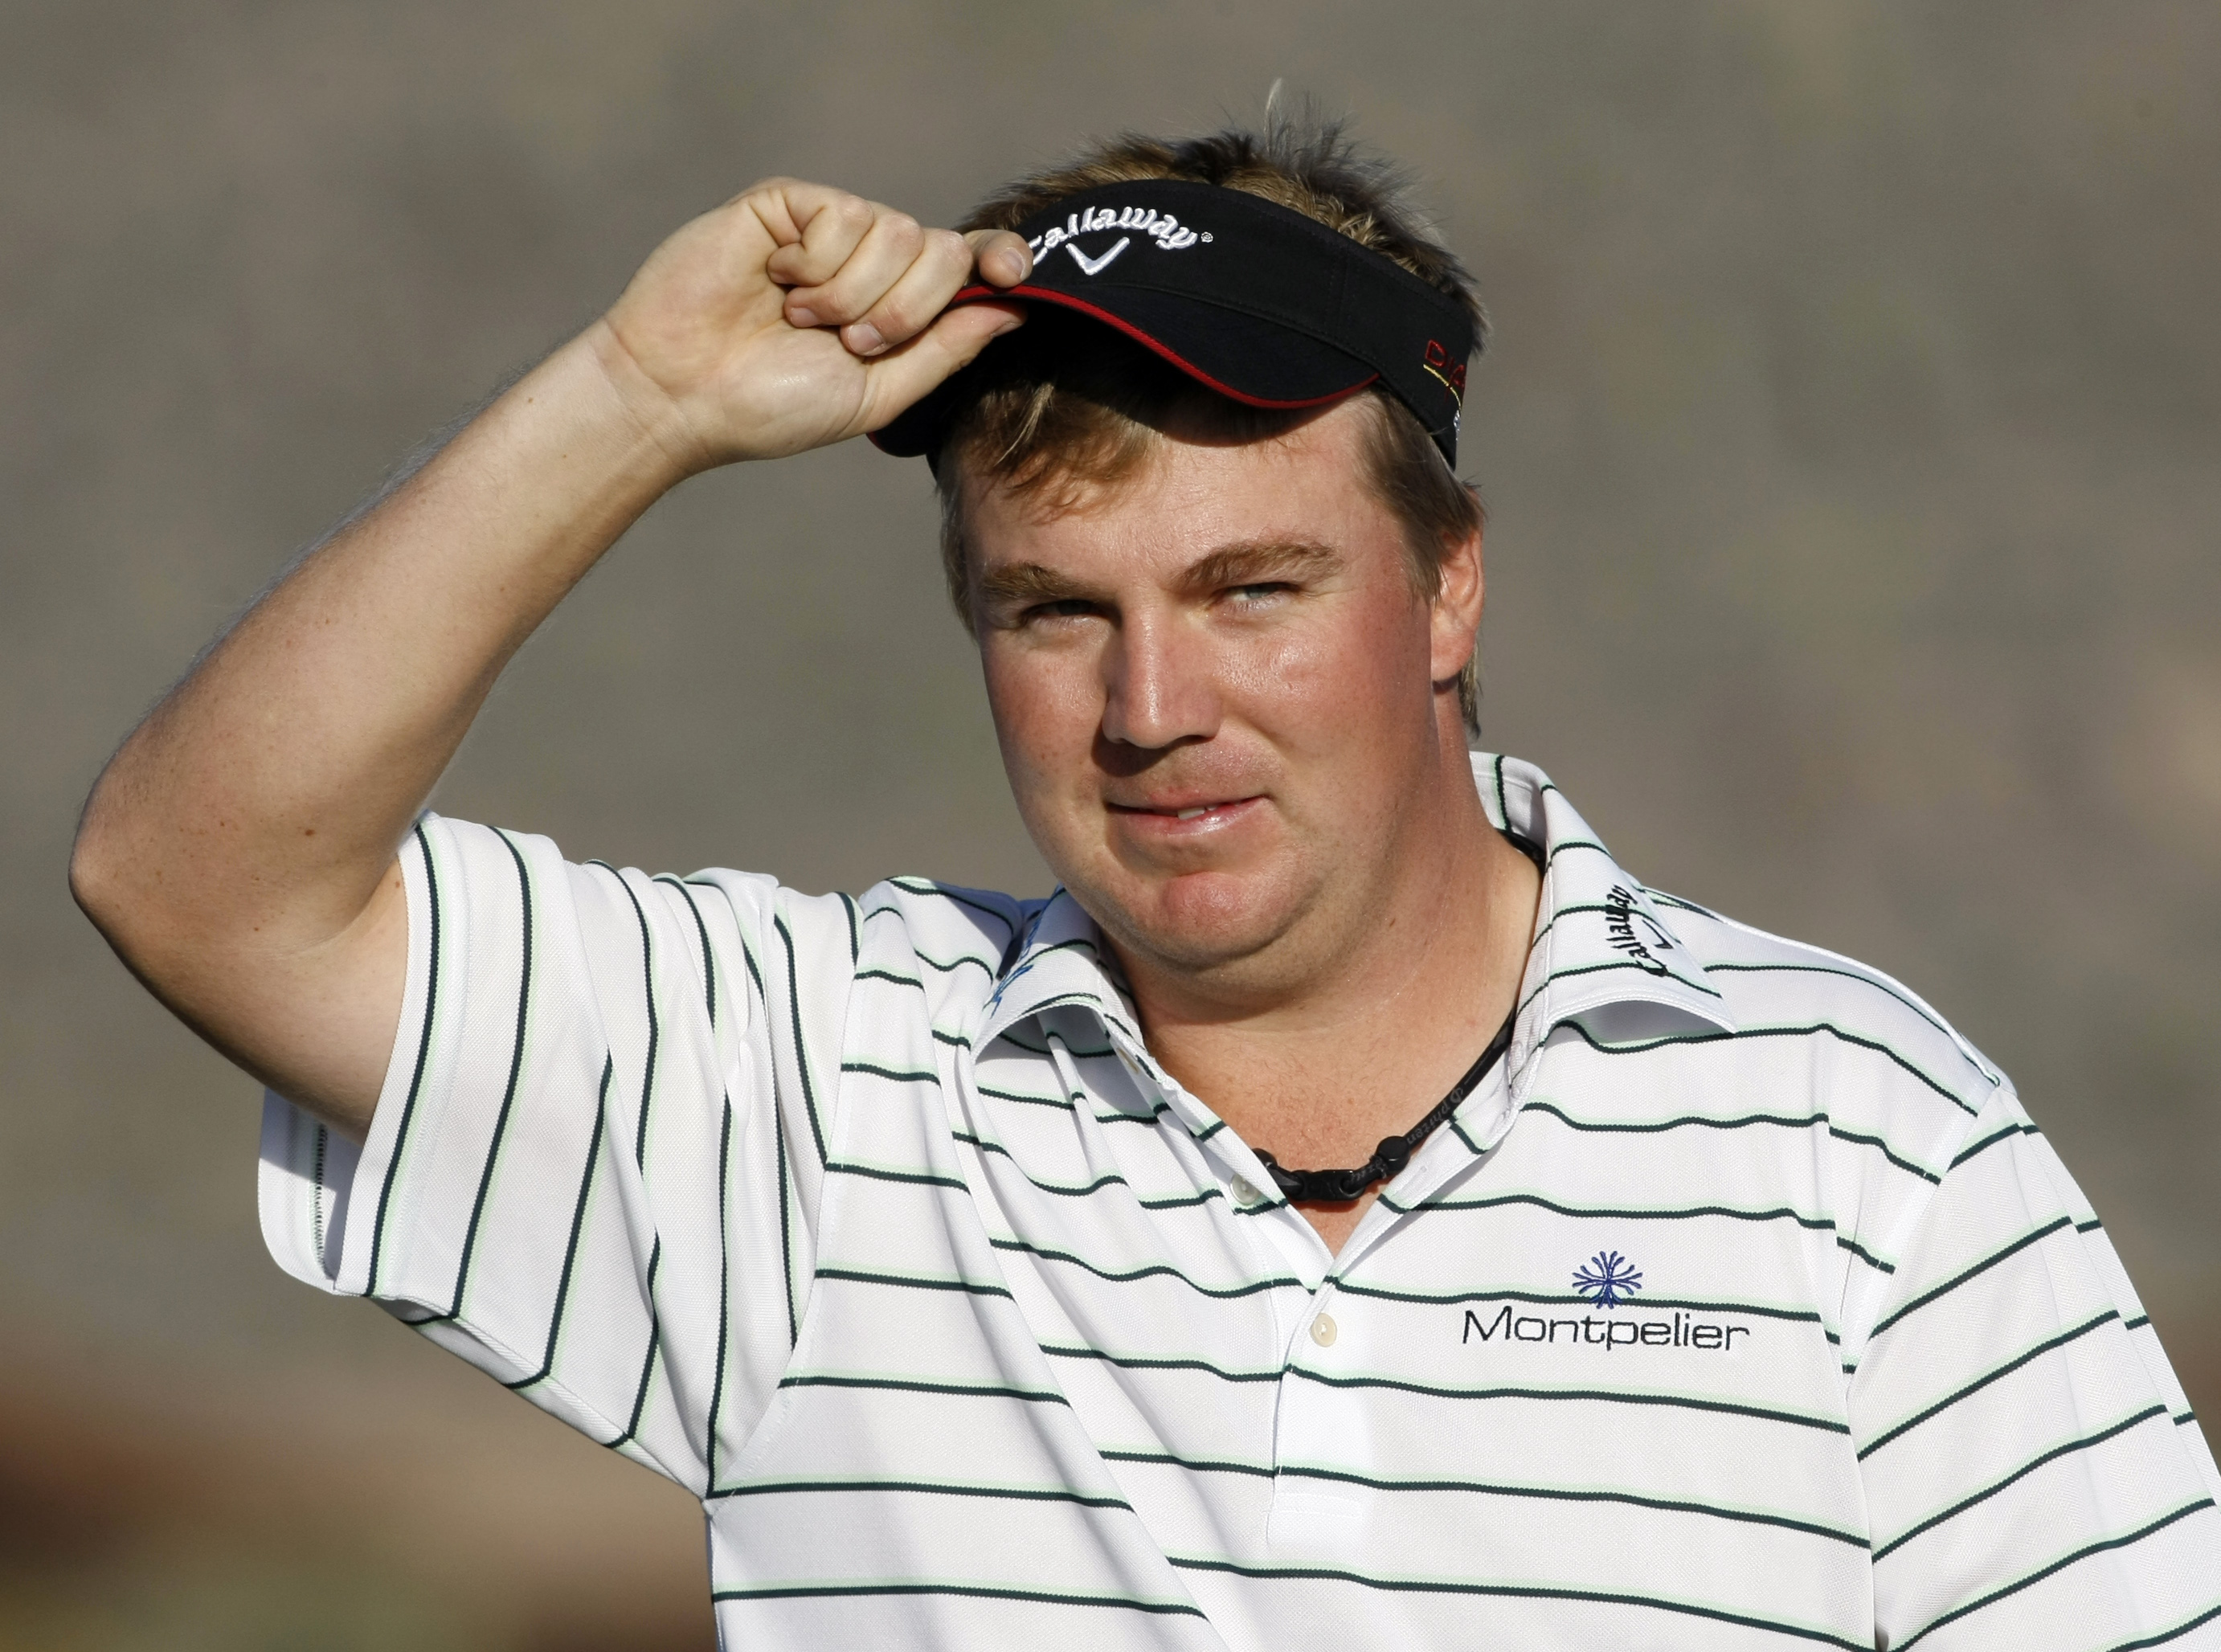 Ross McGowan during the 2010 Match Play Championship.